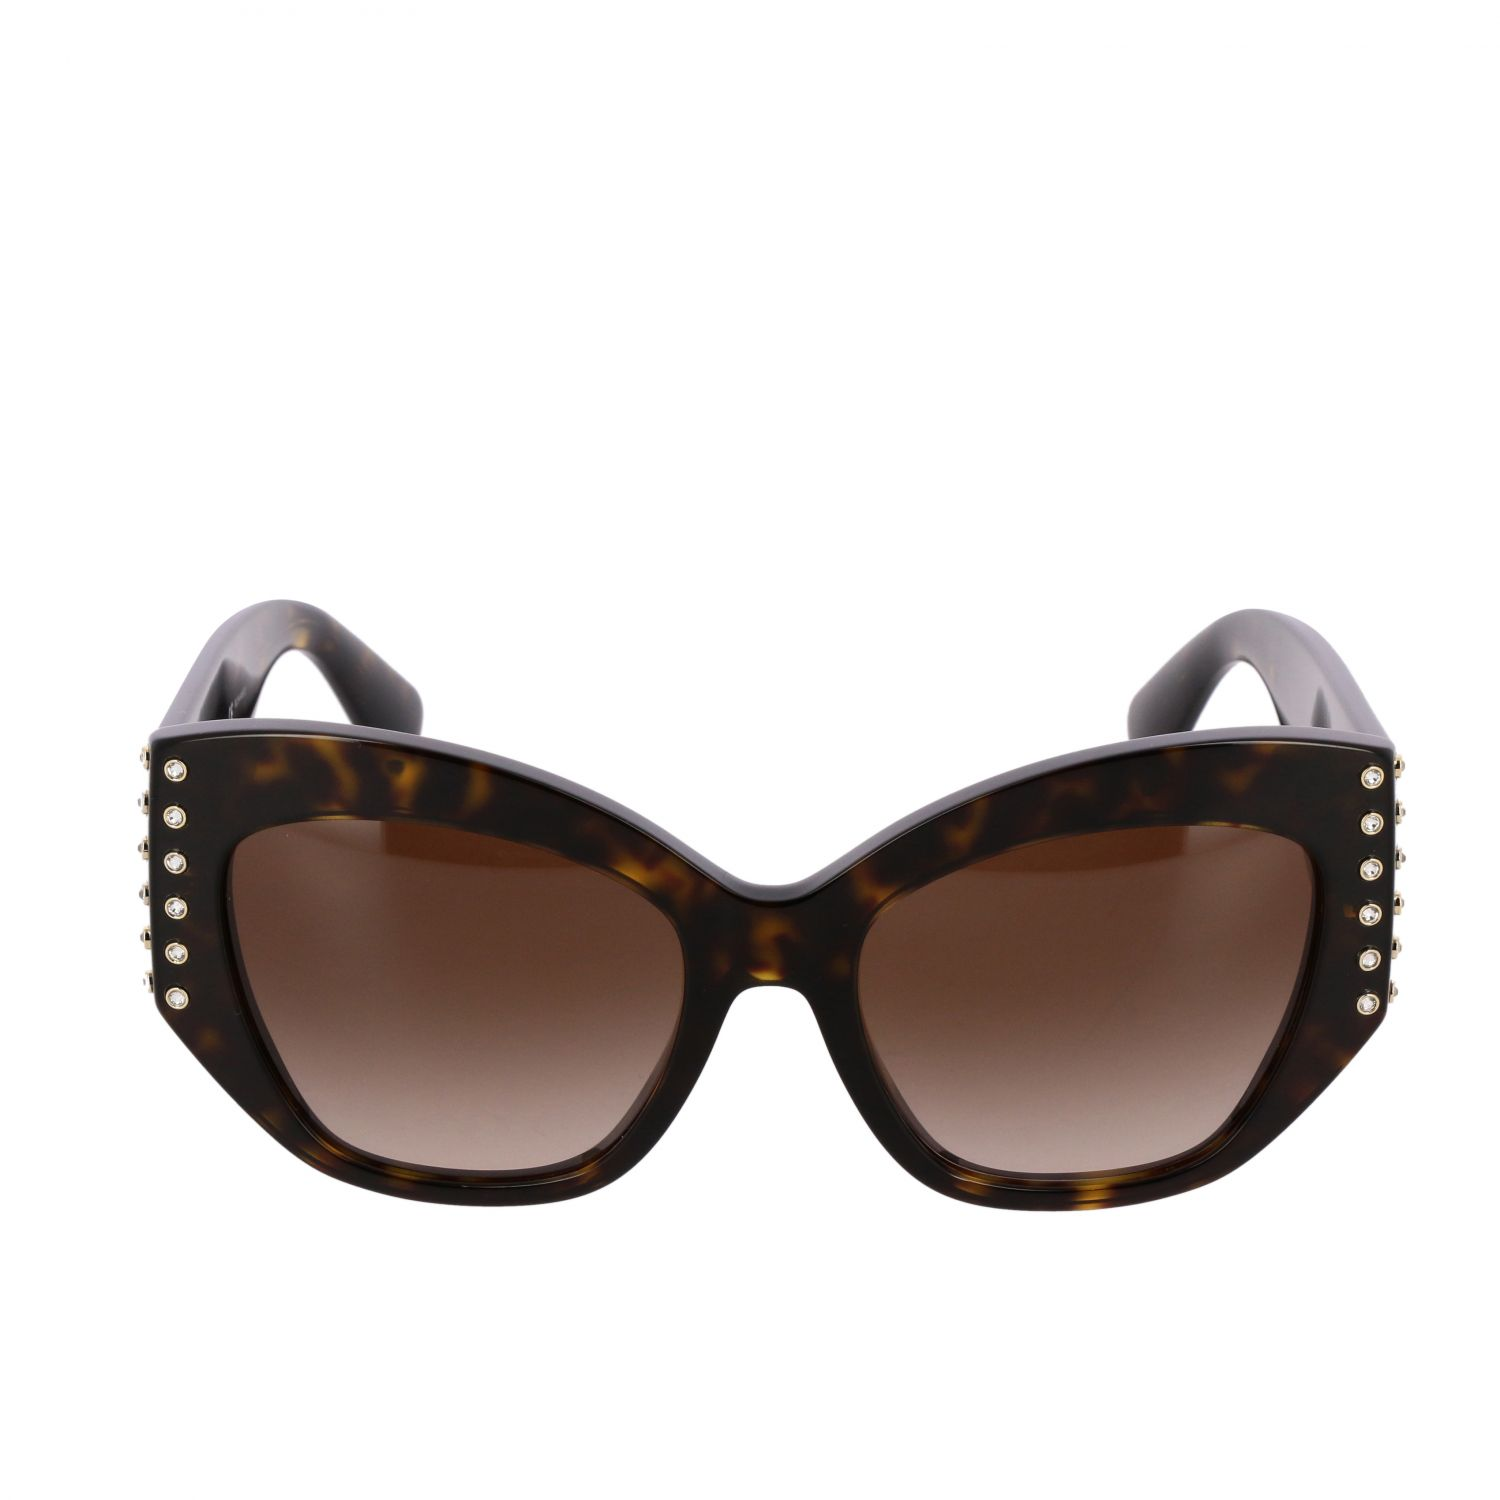 Glasses Valentino: Glasses women Valentino brown 2